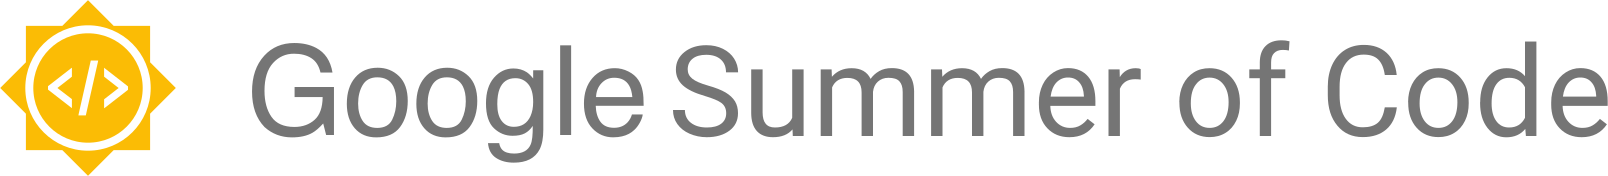 Google Summer of Code 2021: Call for Project Ideas and Mentors